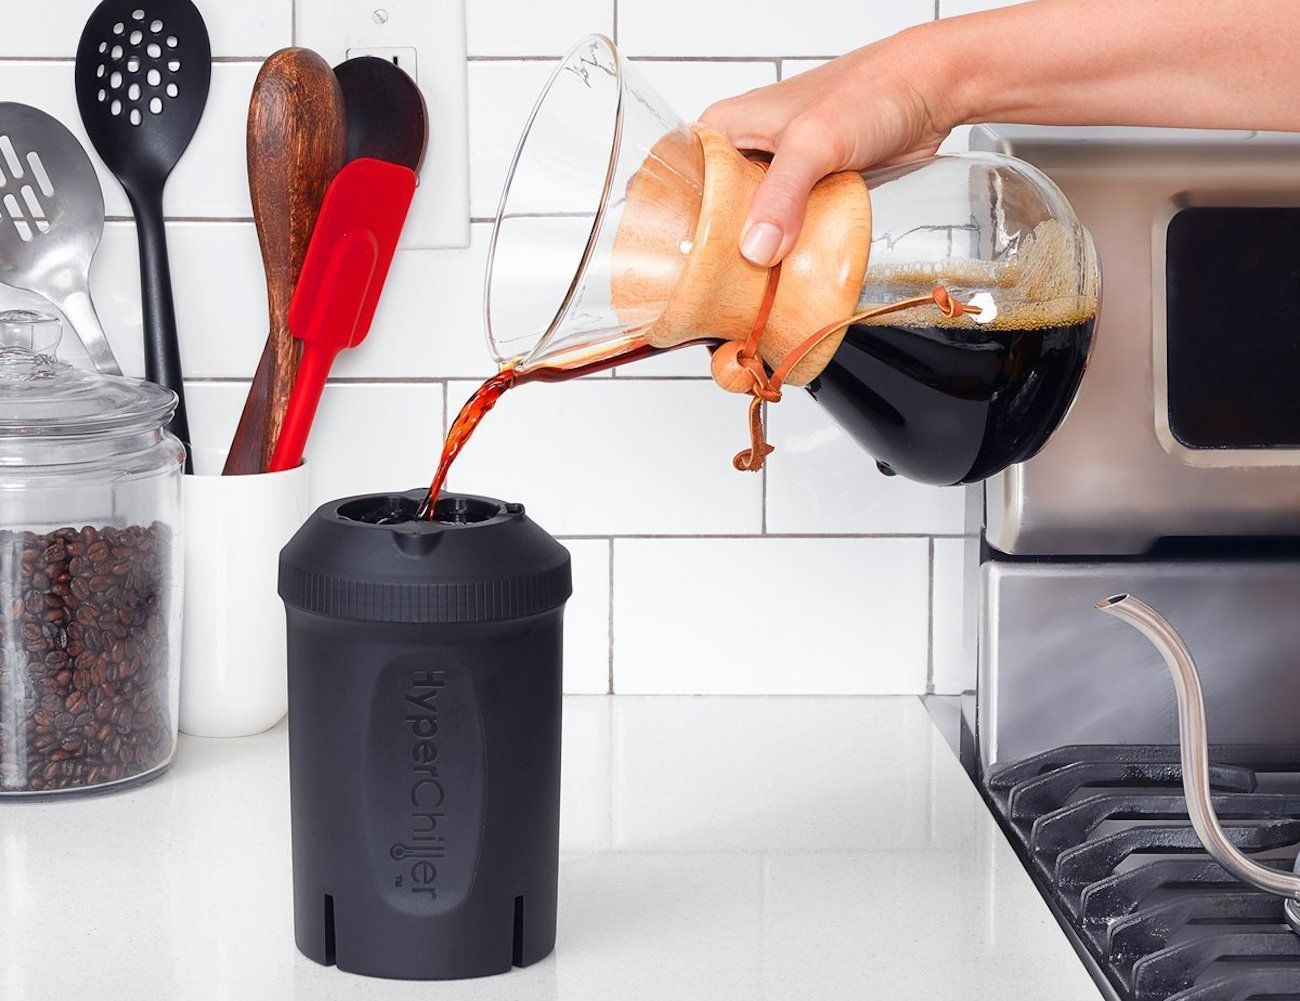 HyperChiller Instant Iced Coffee Maker